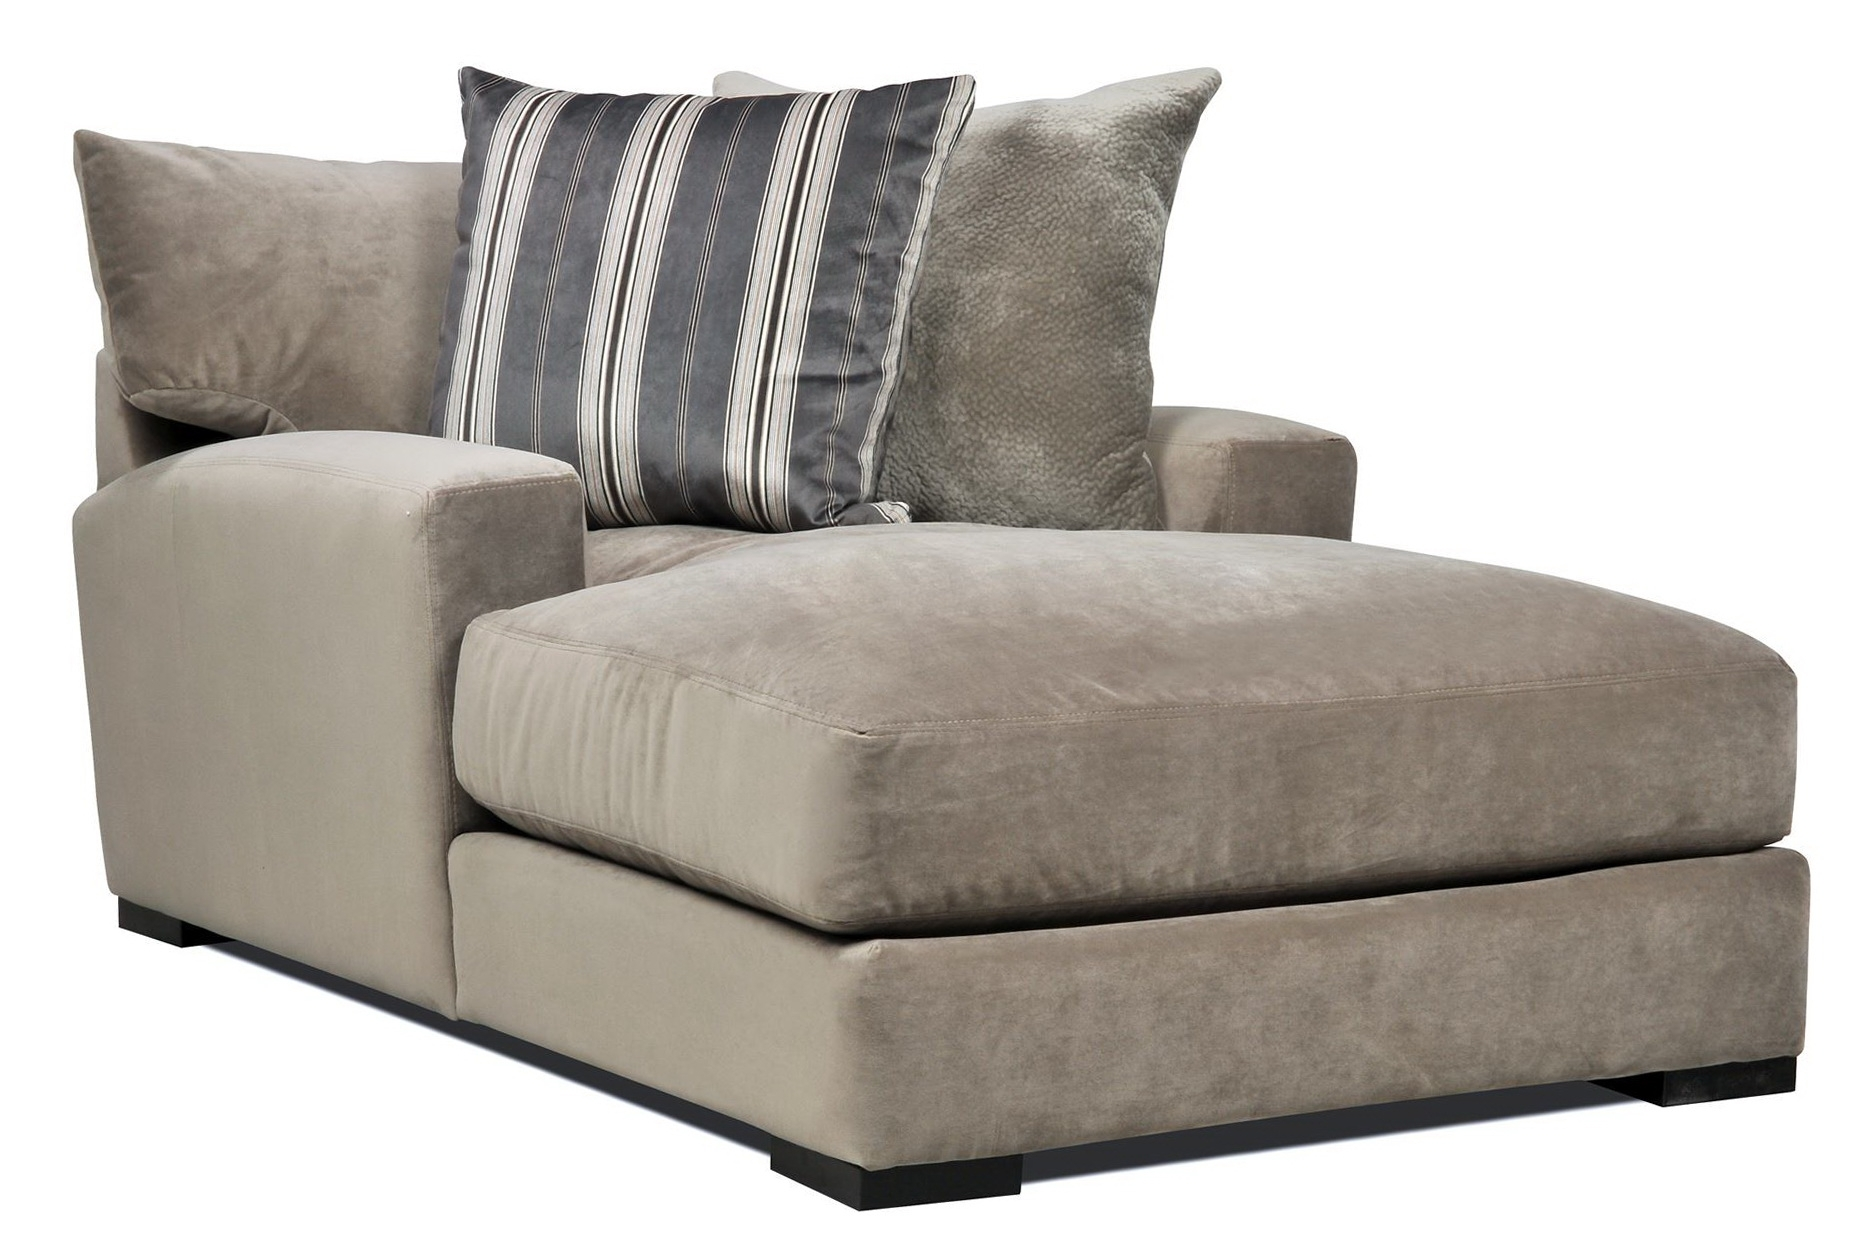 Chaise Lounge Inside 2018 Wide Sofa Chairs (View 9 of 15)